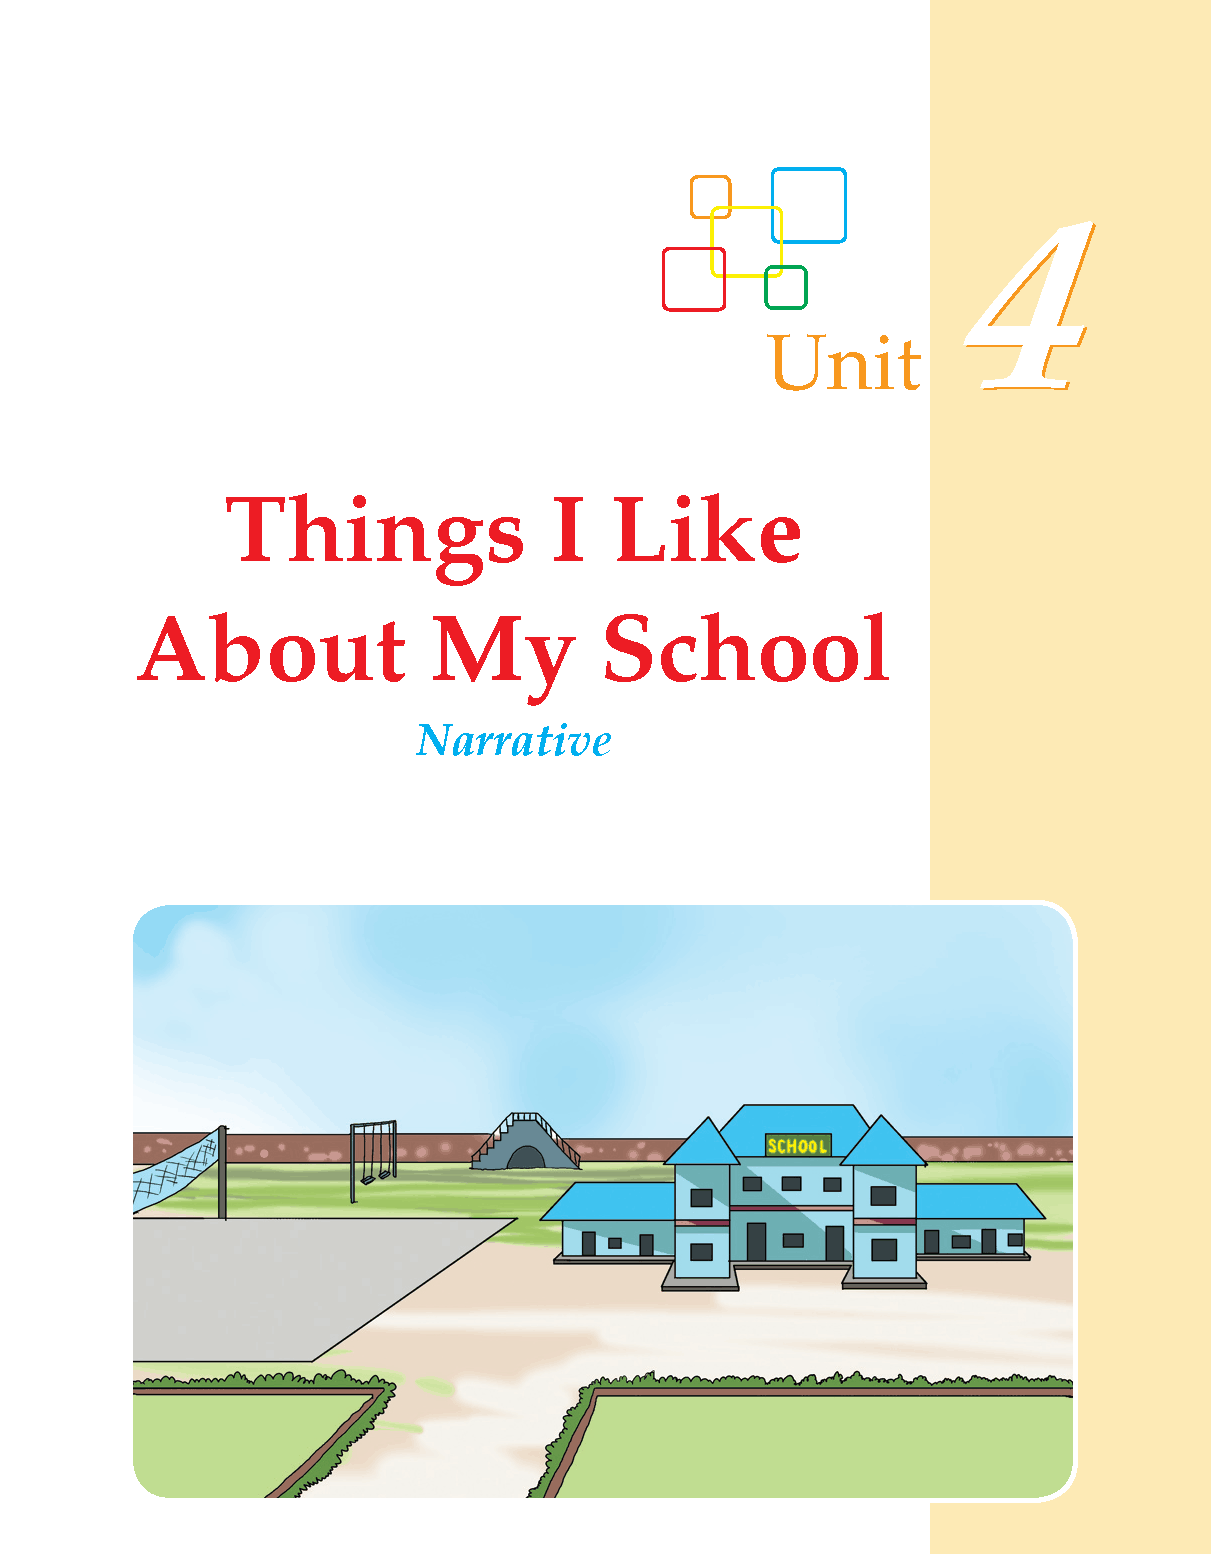 grade narrative essay things i like about my school  writing skill grade 3 things i like about my school